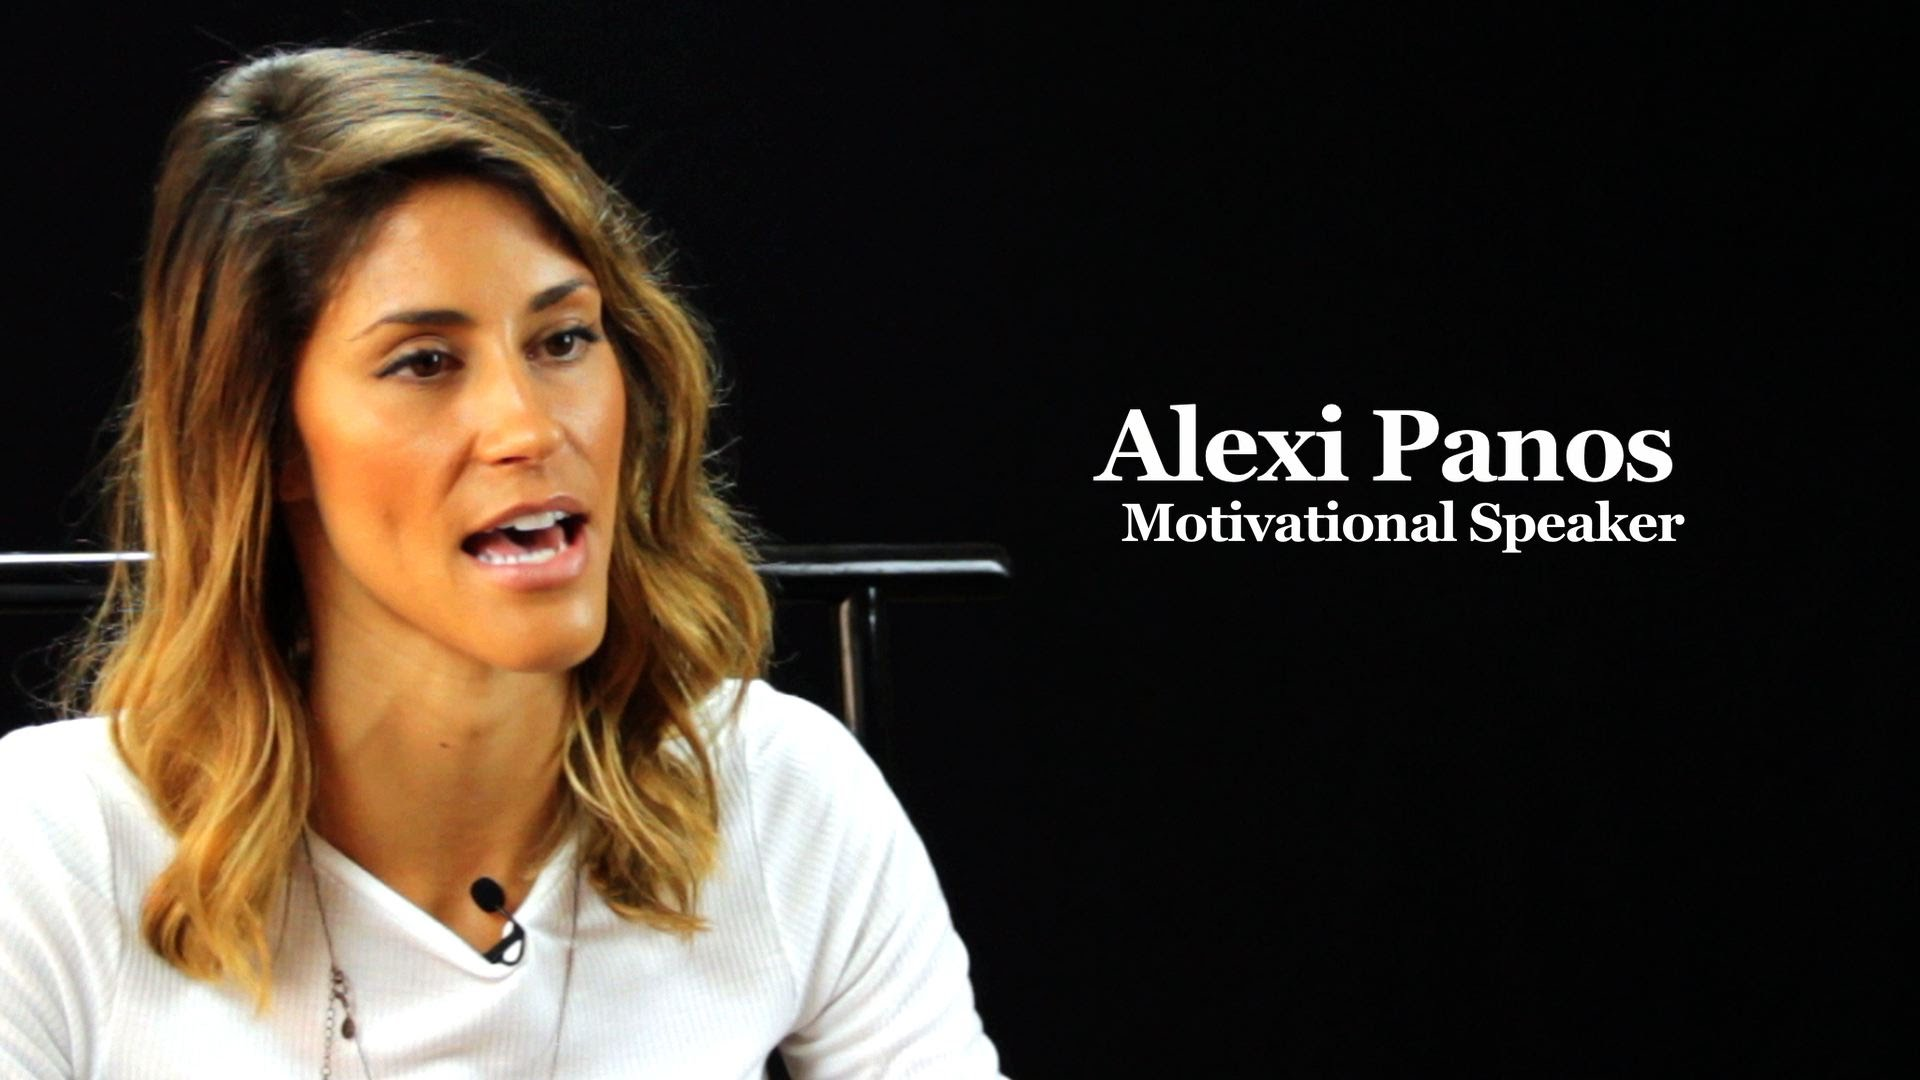 Alexi Panos Shares The Experience that Influenced Her to Change Lifestyles